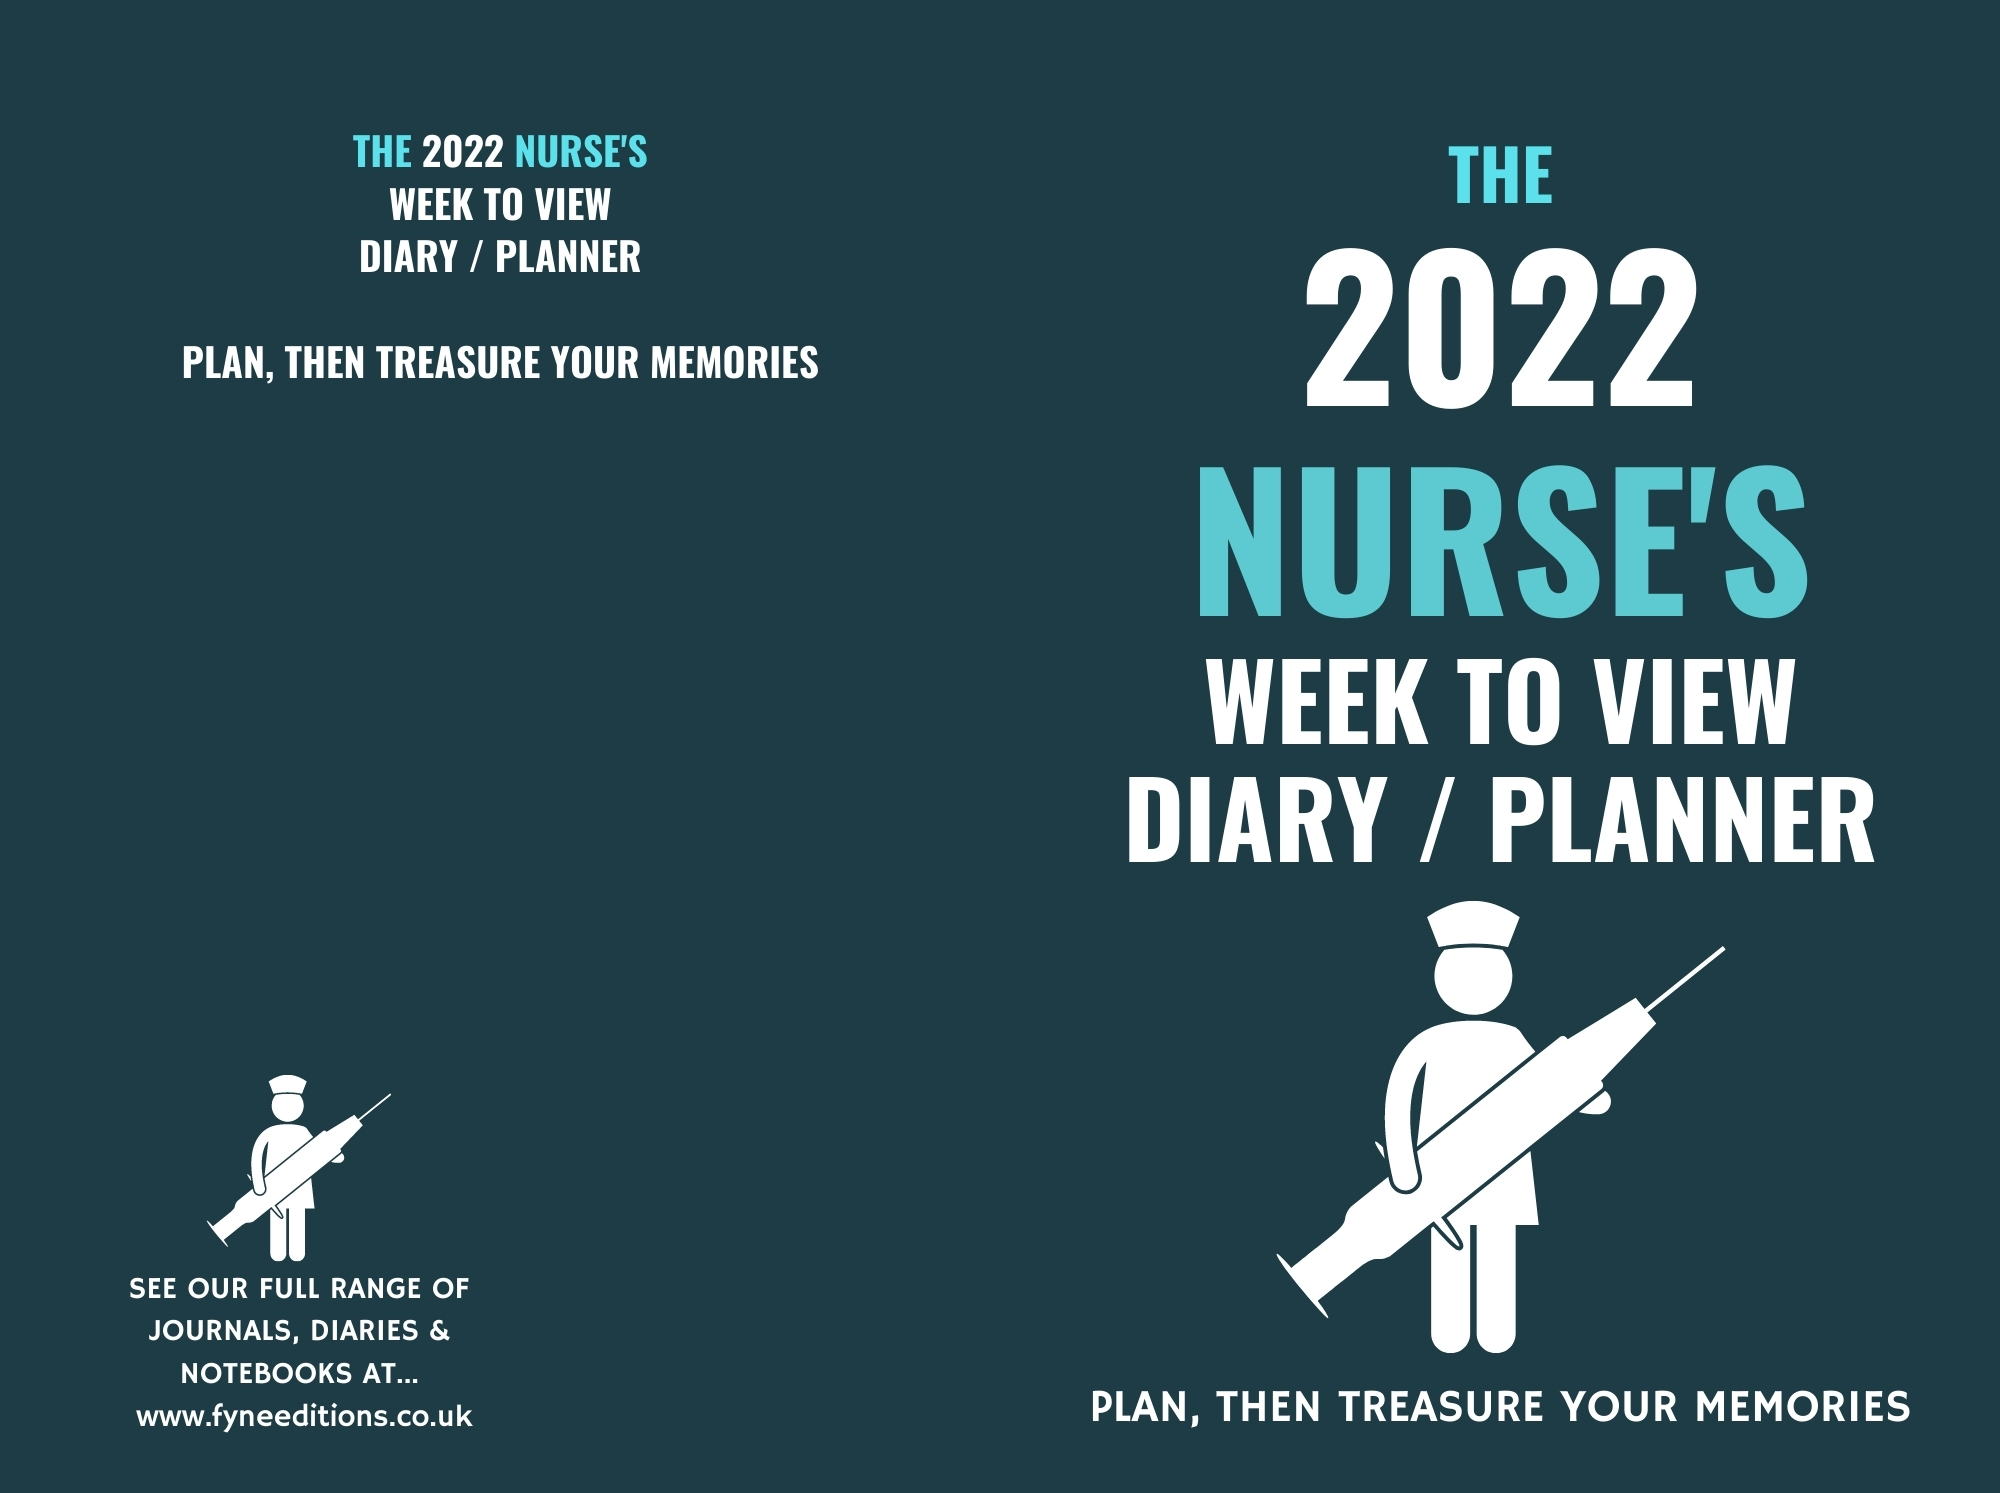 Cover - The 2022 Nurse's Week to View Diary Planner